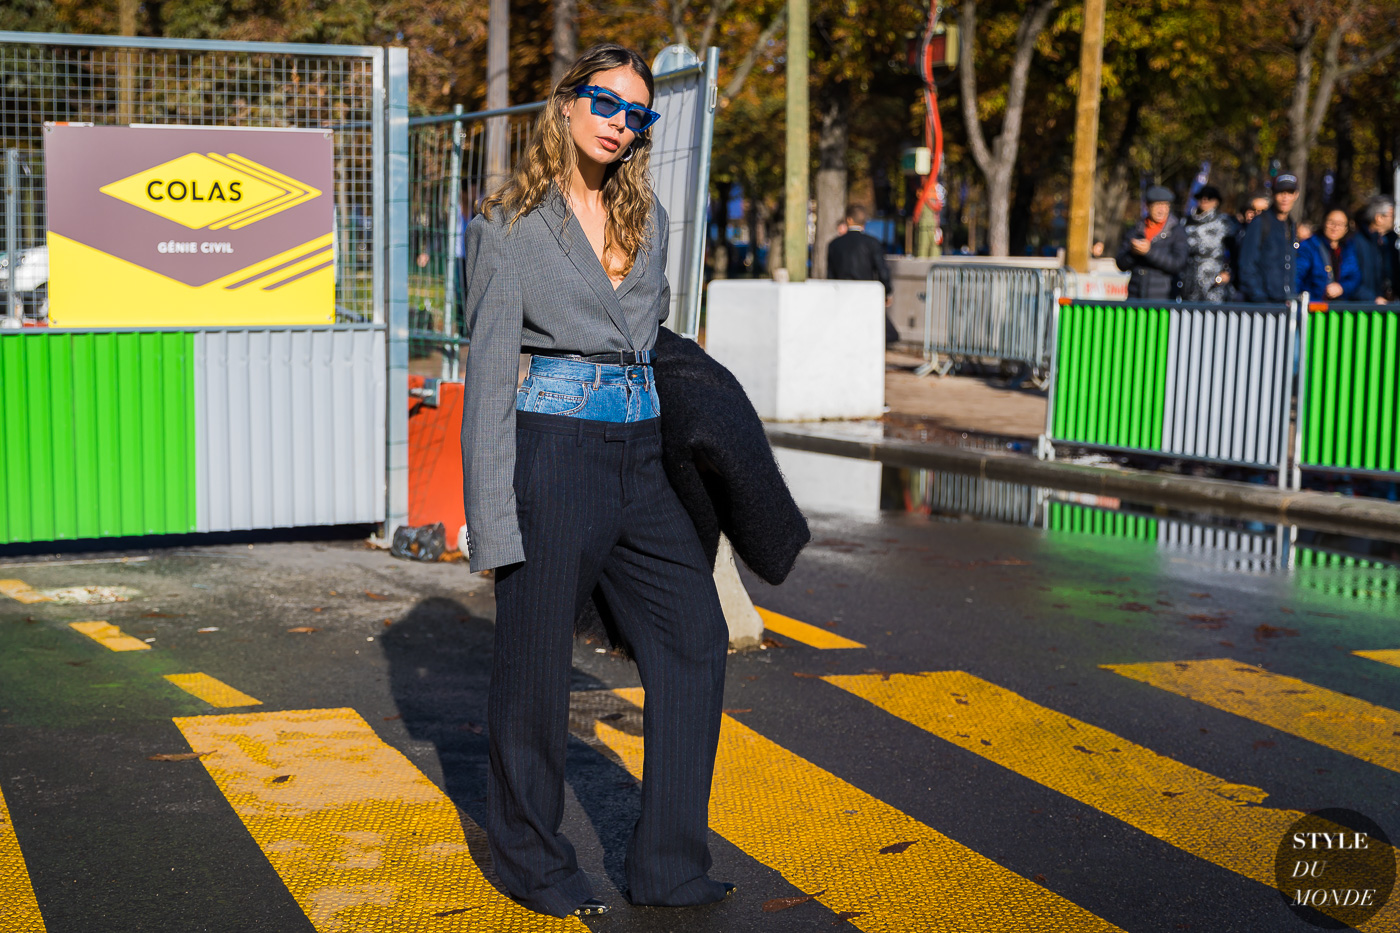 Irina Lakicevic by STYLEDUMONDE Street Style Fashion Photography_48A2463